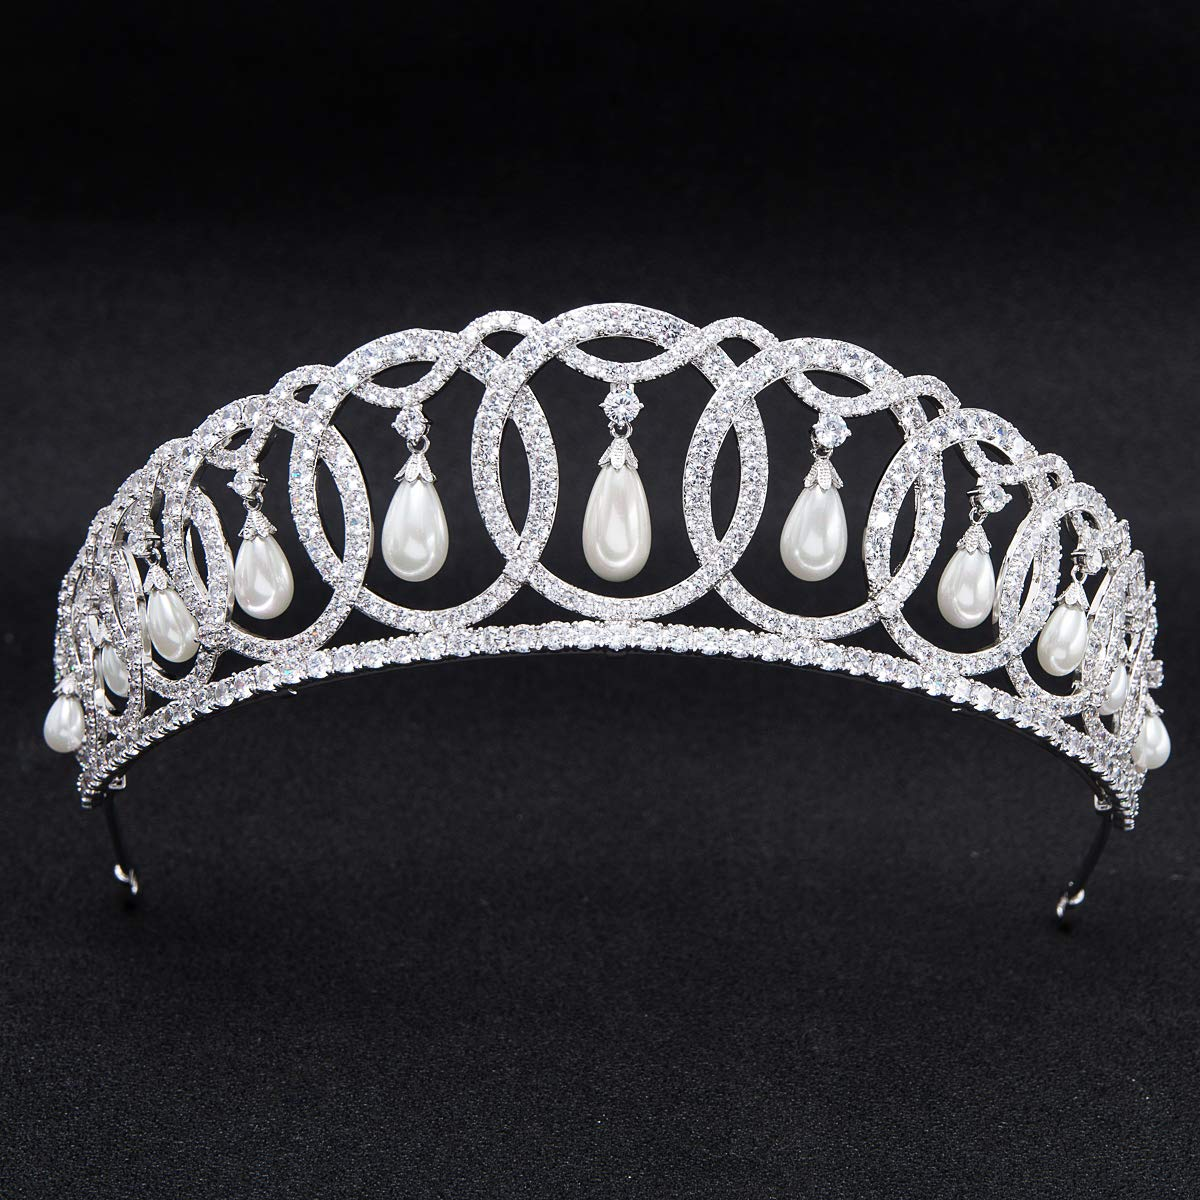 SepBridals Classic Cubic Zirconia CZ Pearls Wedding Bridal Tiara Crown Diadem Women Hair Accessories CH10223 by SEPBRIDALS (Image #3)